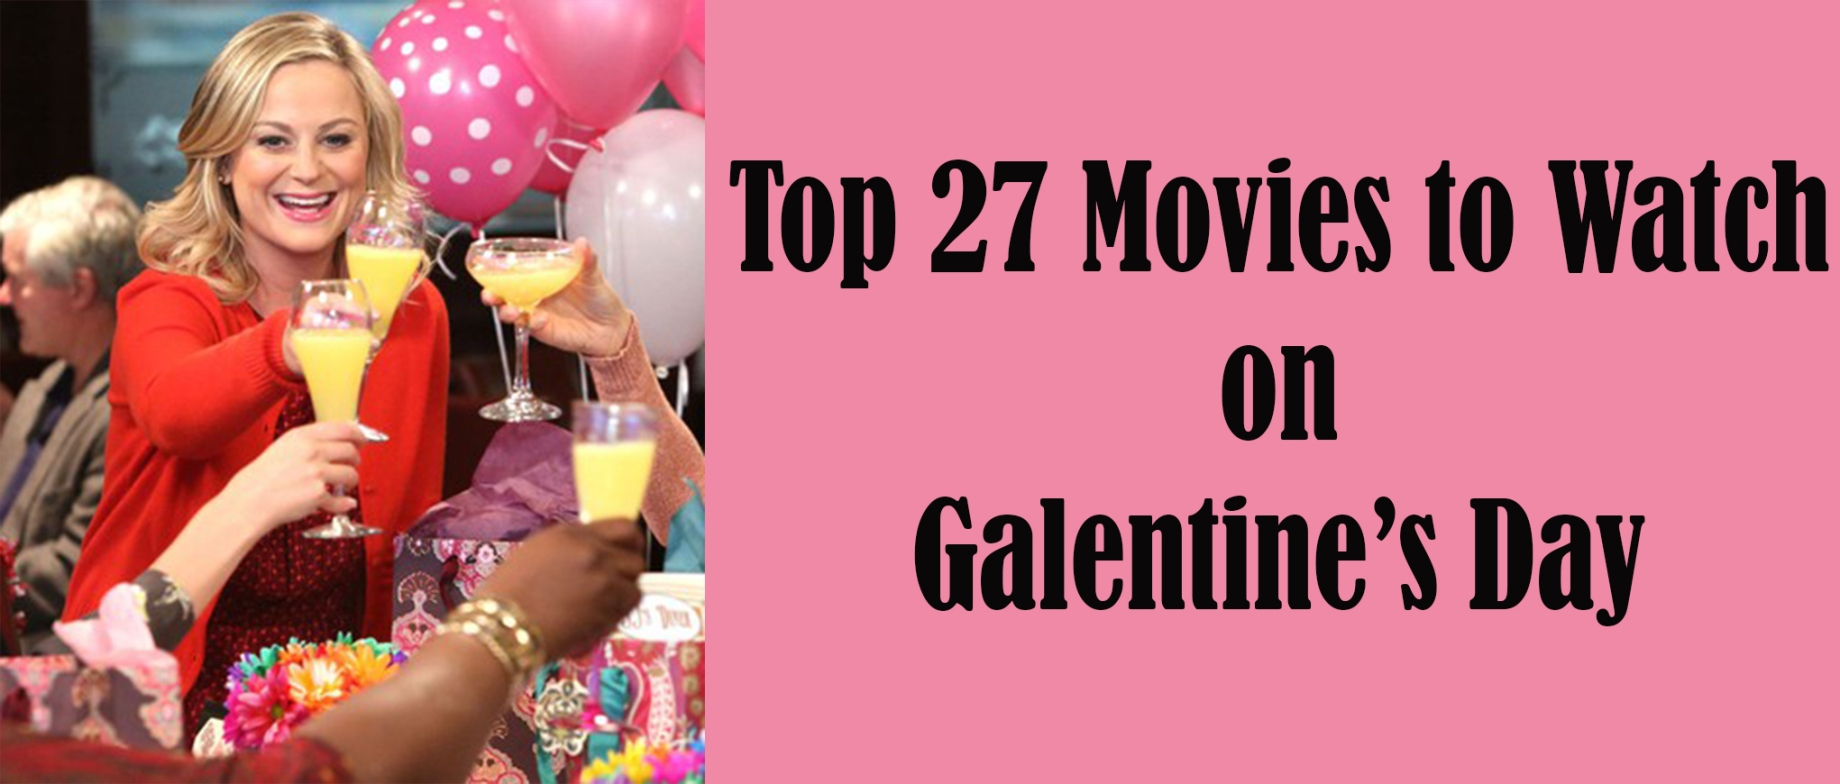 Top 27 Movies to Watch on Galentine's Day